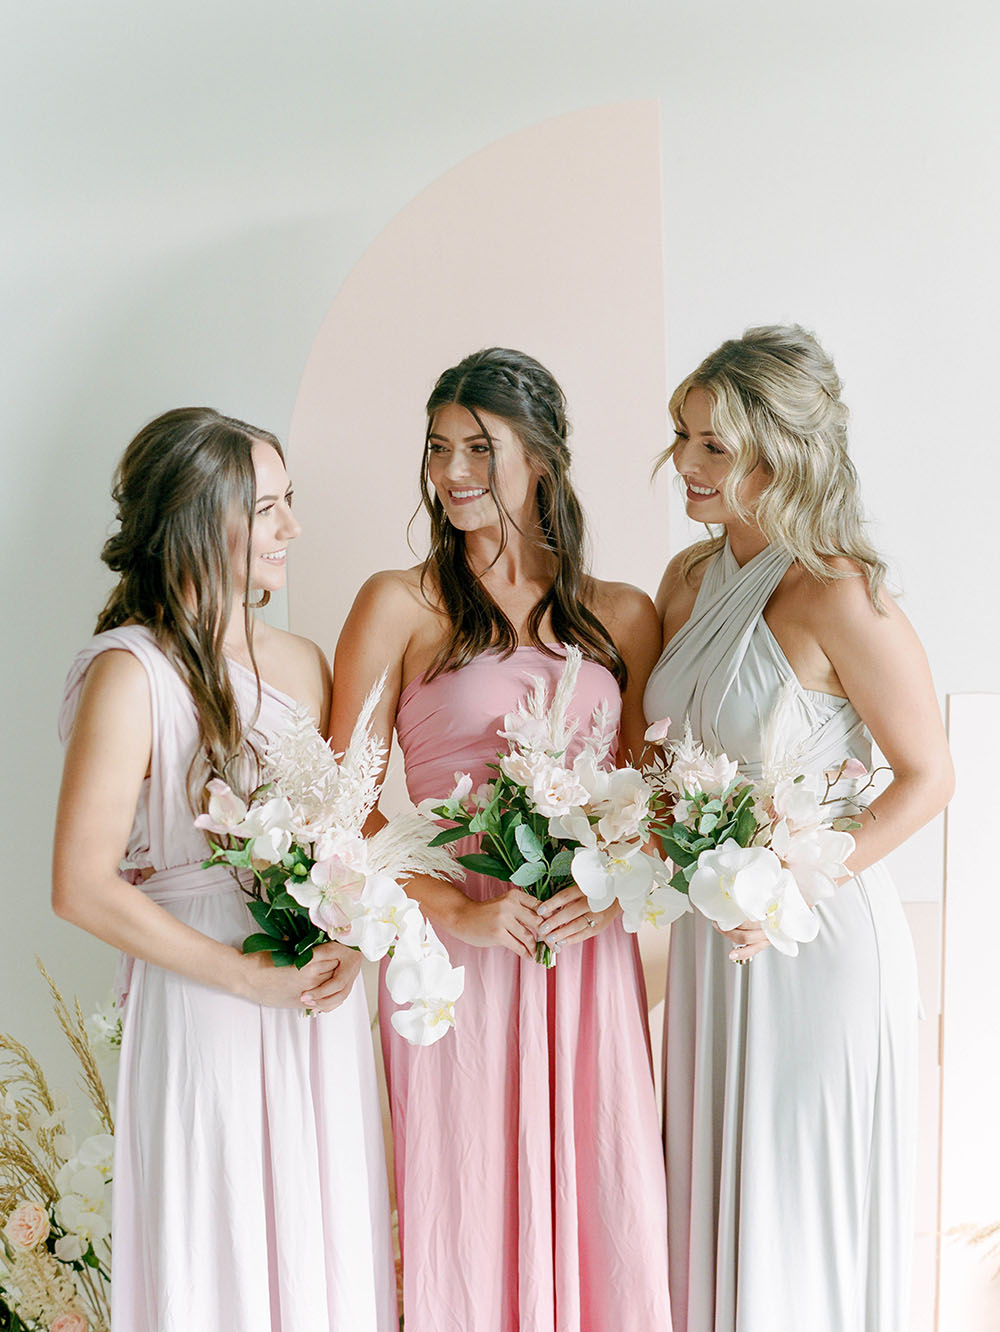 How To Customize Refresh And Upcycle Mismatched Bridesmaid Dresses With Rit Dye Ruffled